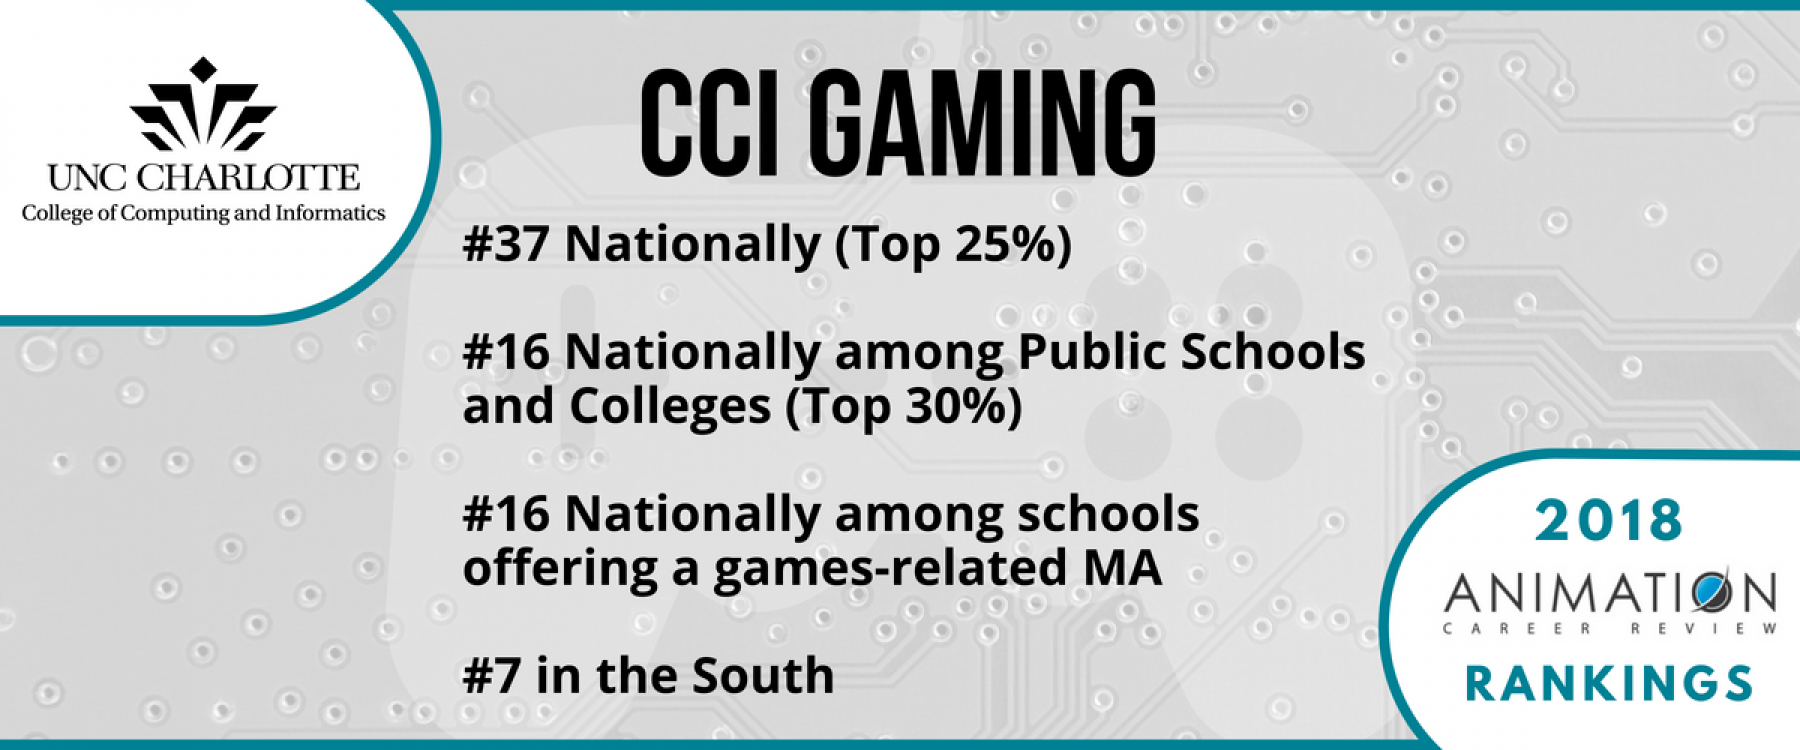 CCI Gaming Ranks